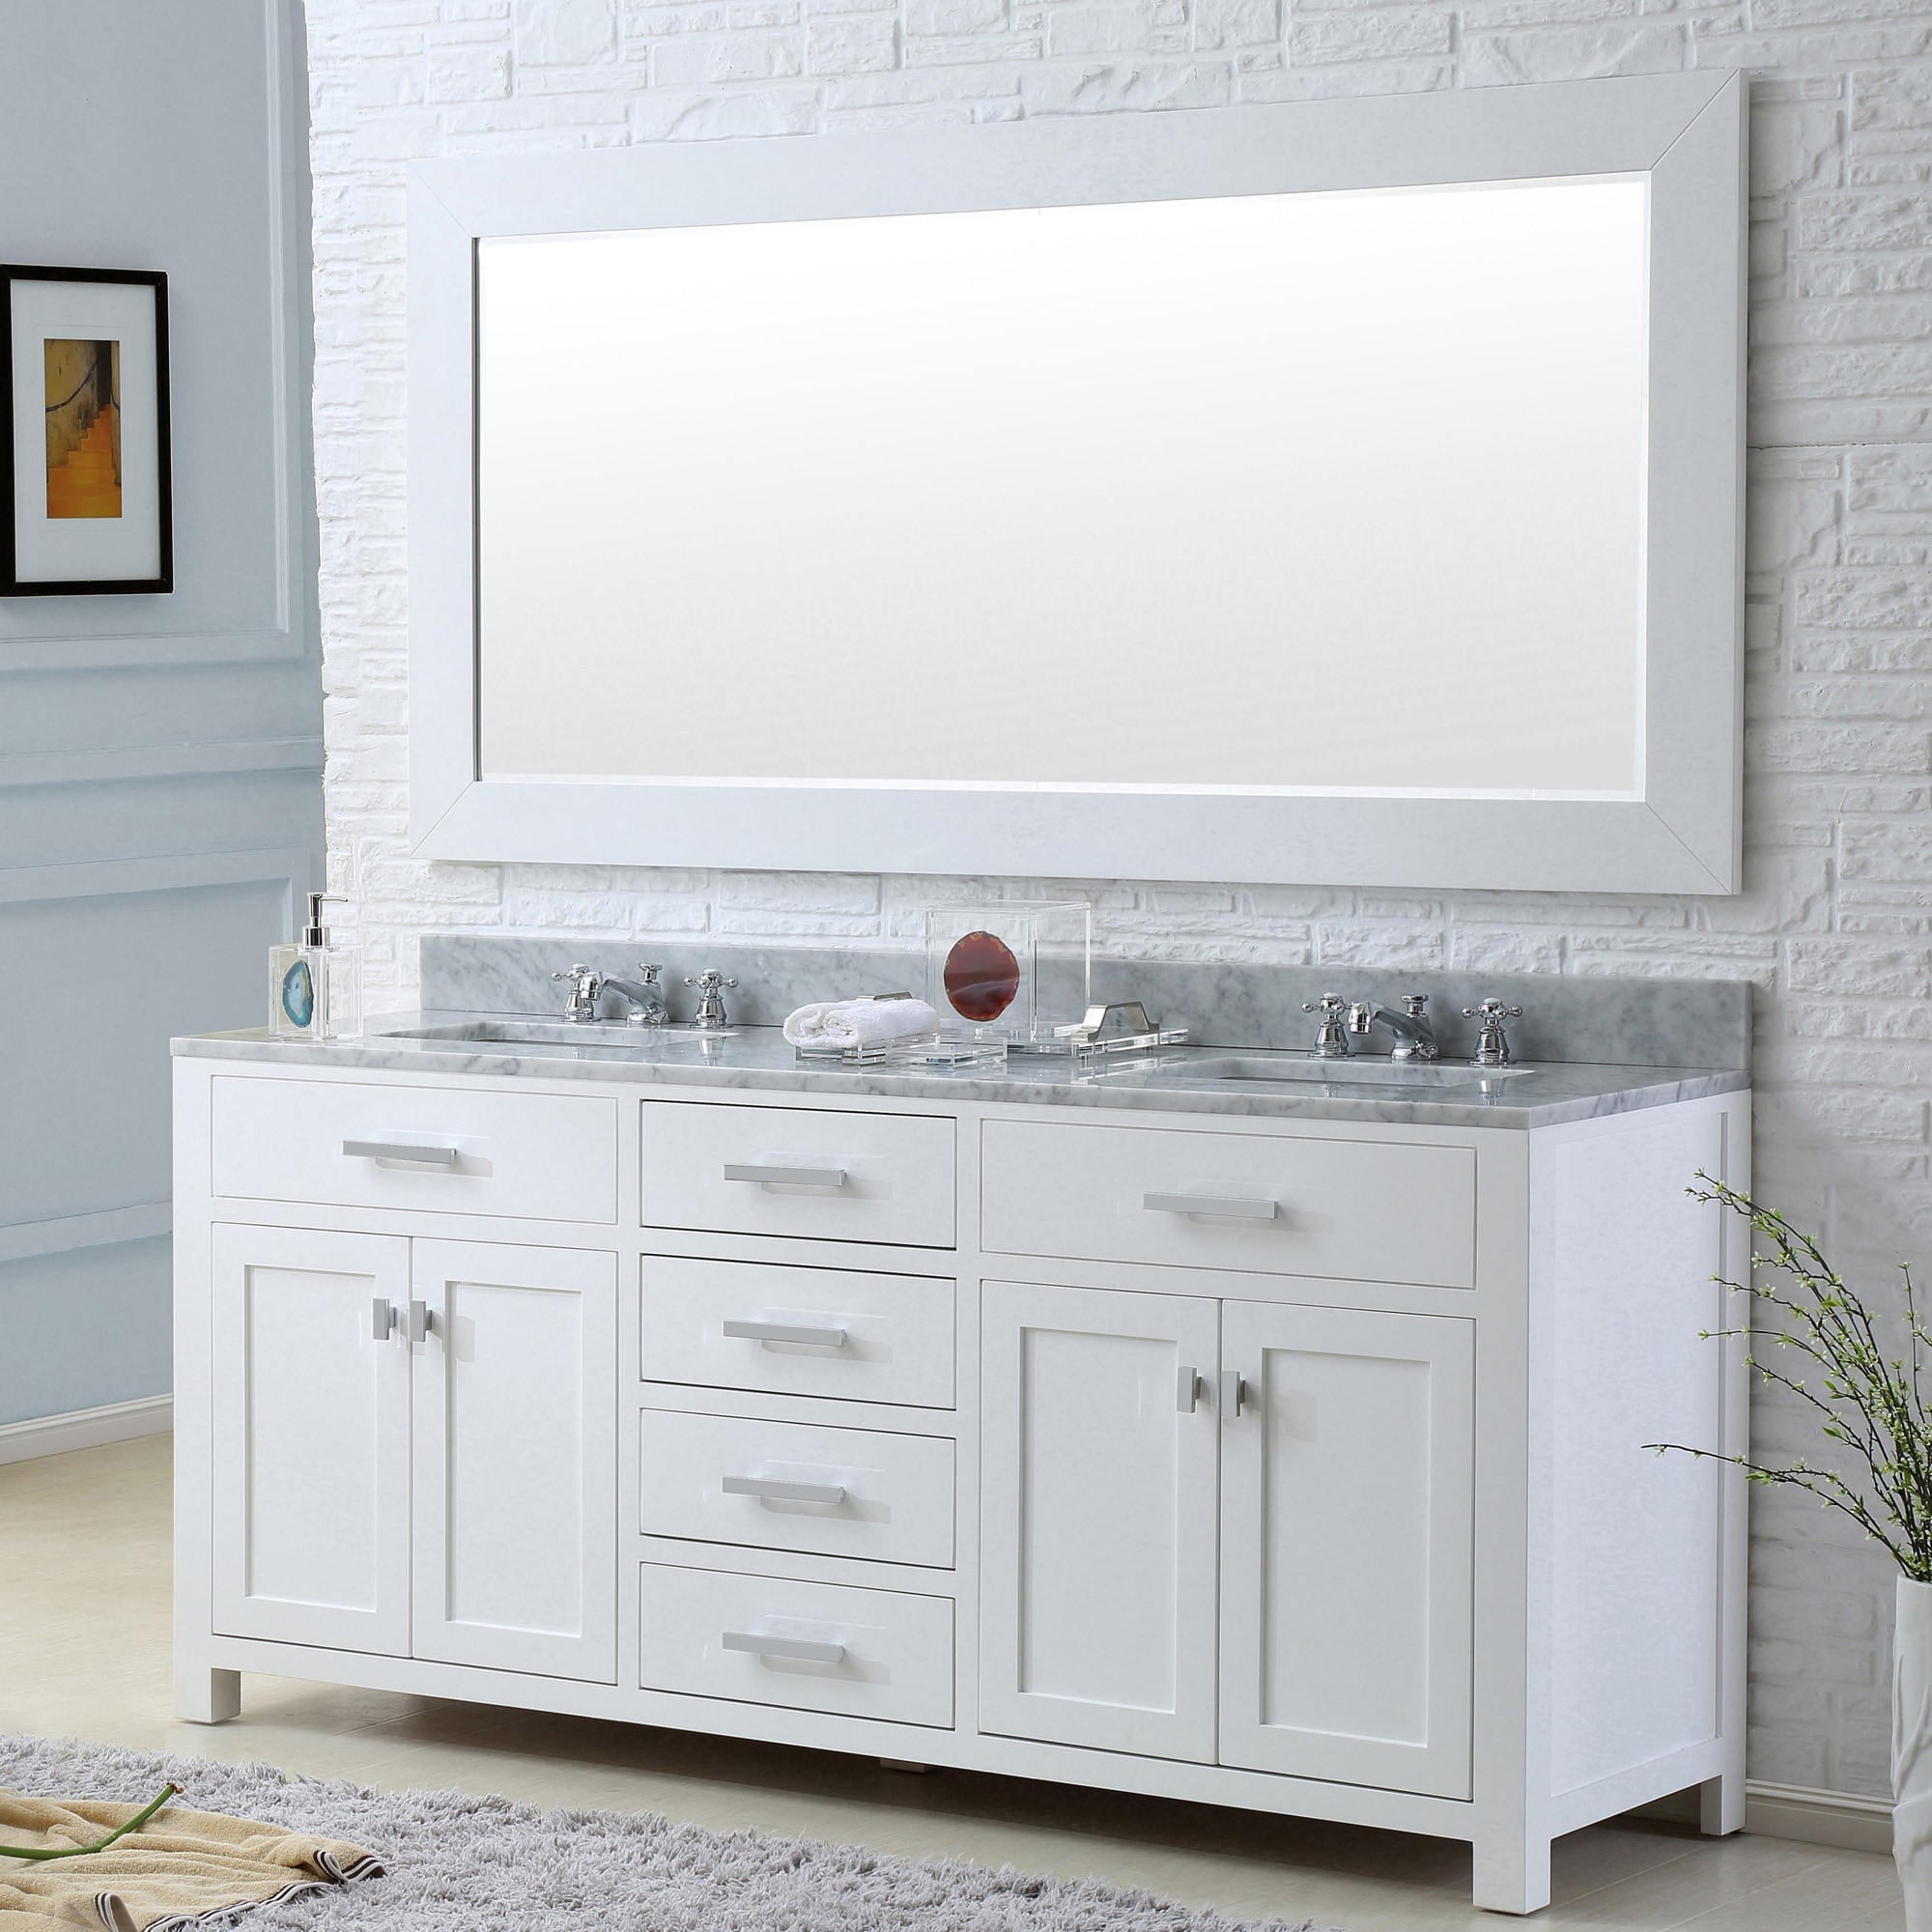 Madison Solid White Double Sink Bathroom Vanity With Large Framed Mirror Overstock 8664419